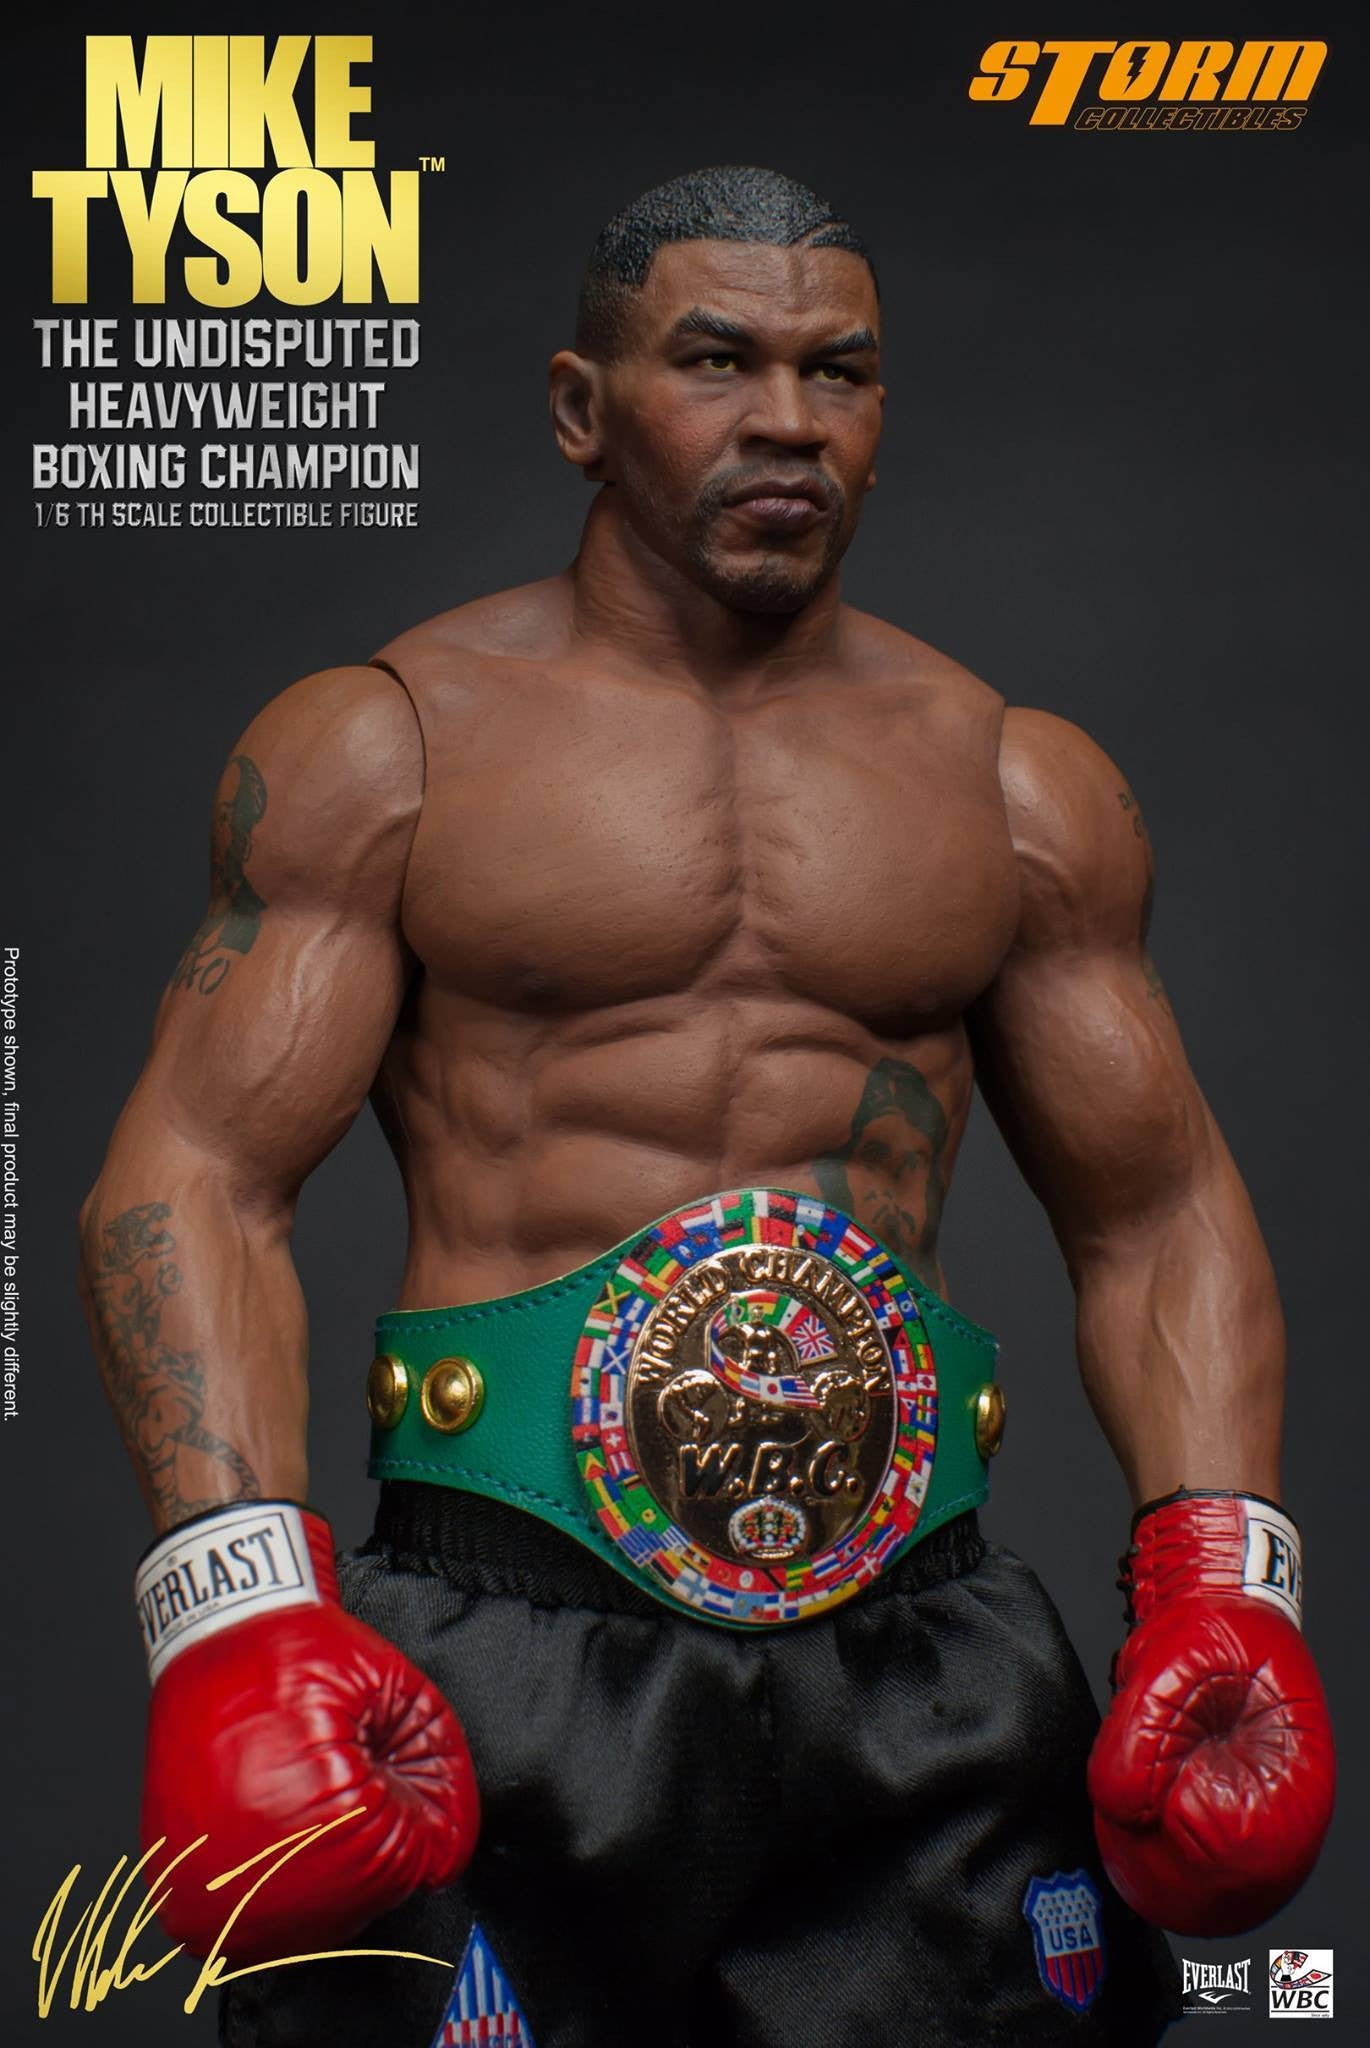 "Storm Collectibles - 1:6 Scale Collectible Figure - Mike Tyson ""The Undisputed Heavyweight Boxing Champion"" - Marvelous Toys - 6"